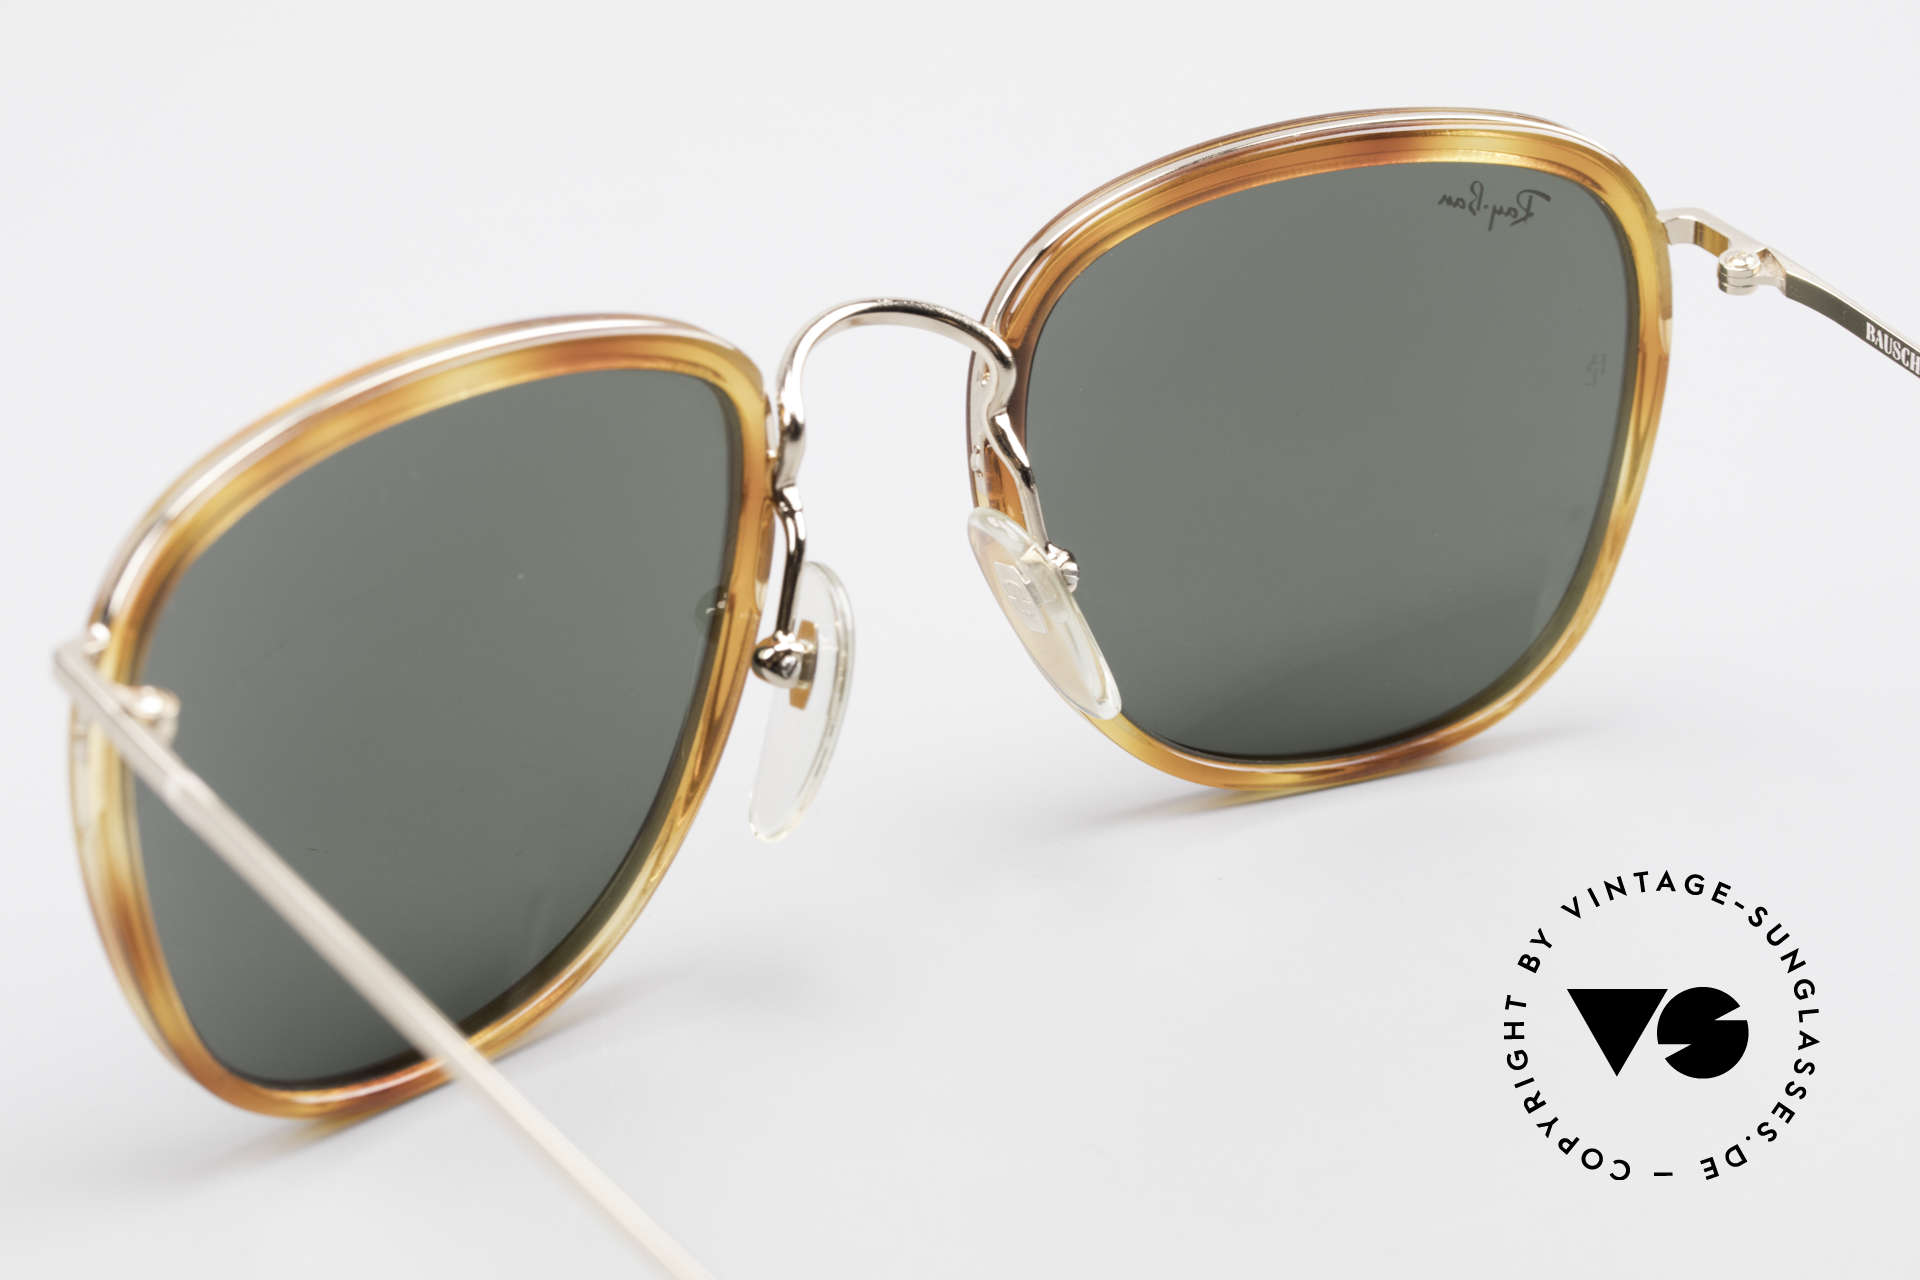 "Ray Ban New Style Bausch & Lomb Italy Hybrid, nevertheless, ""Frame Italy"" is printed on the frame, Made for Men and Women"